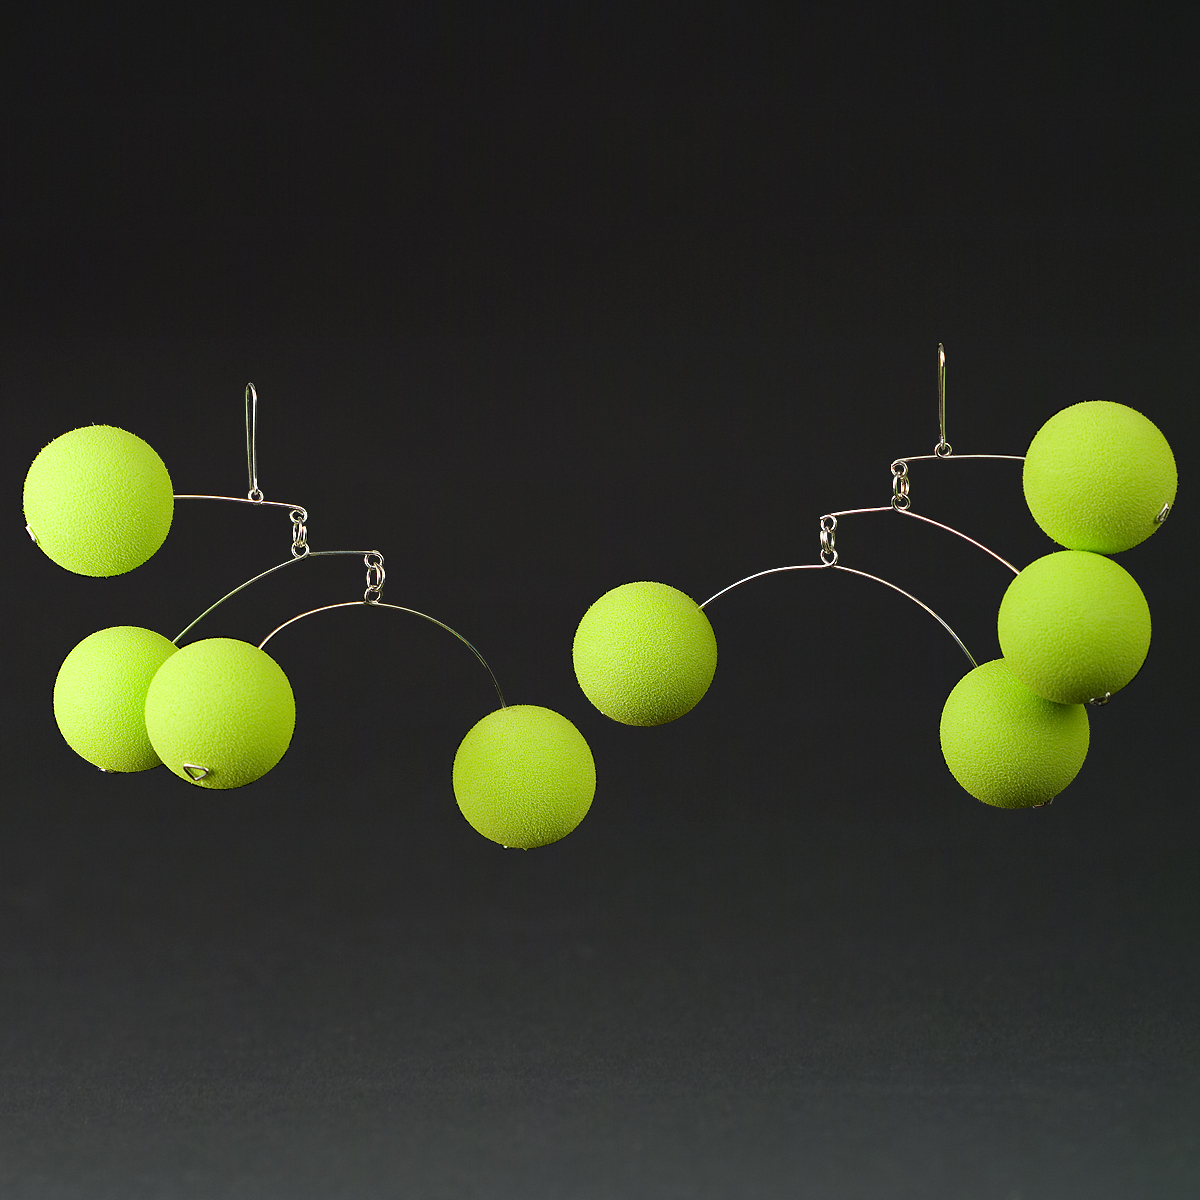 Green Rubber balls